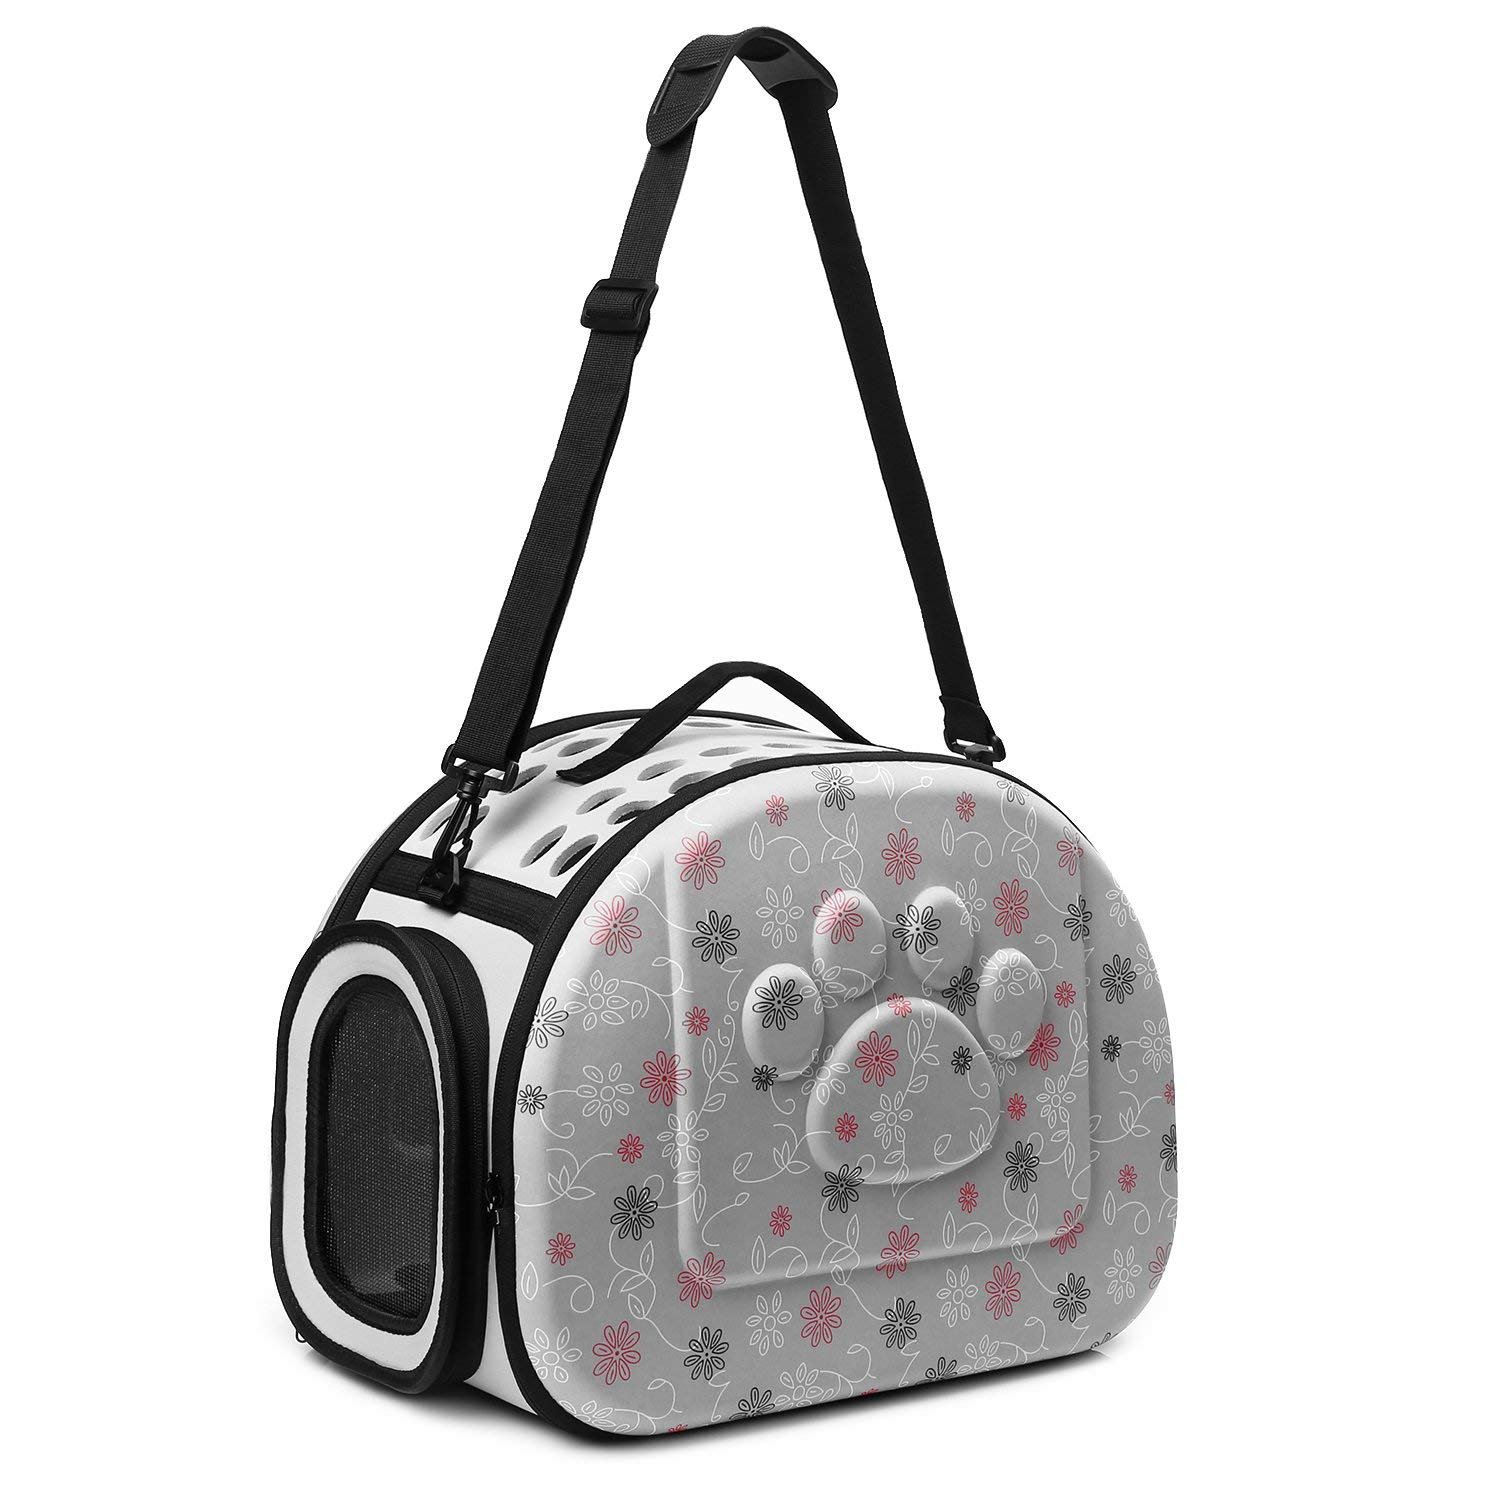 Amazon.com : Century Star Pet Carrier for Cats and Dogs ...